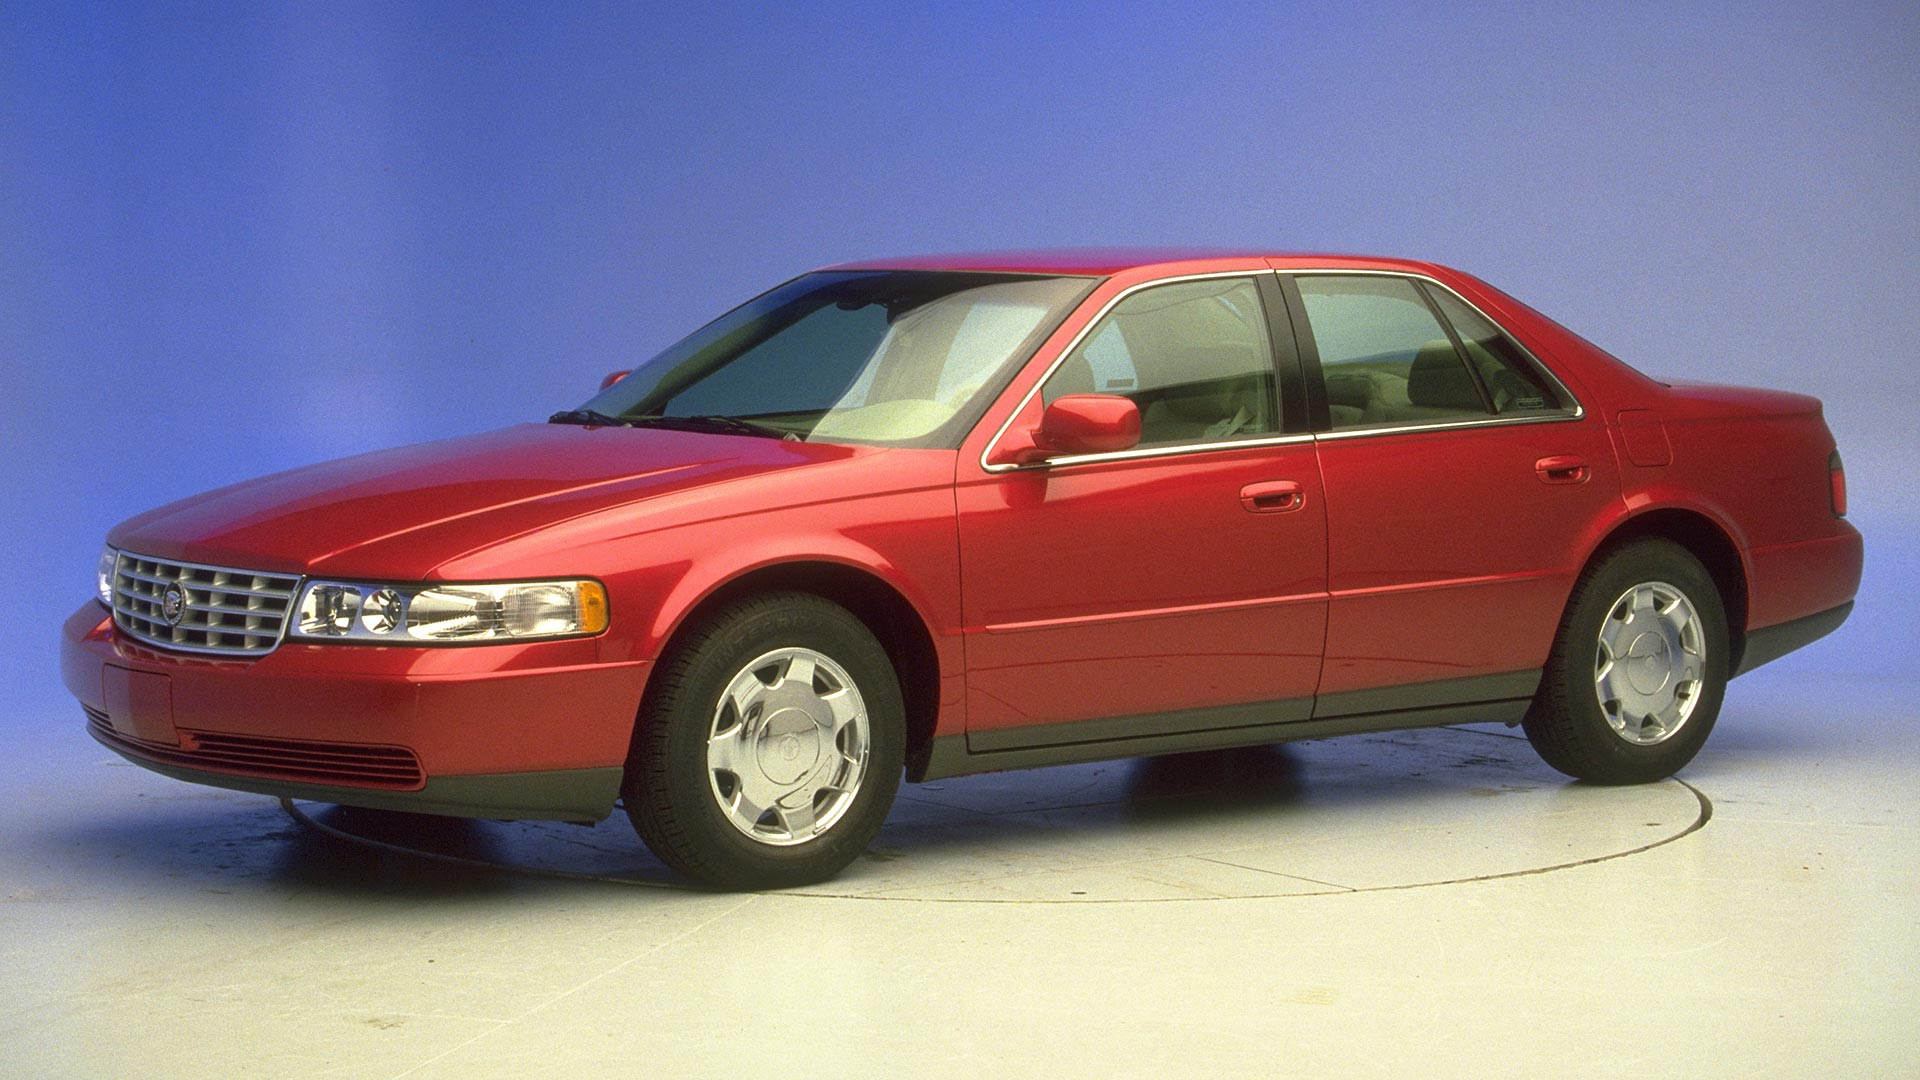 2002 Cadillac Seville 4-door sedan